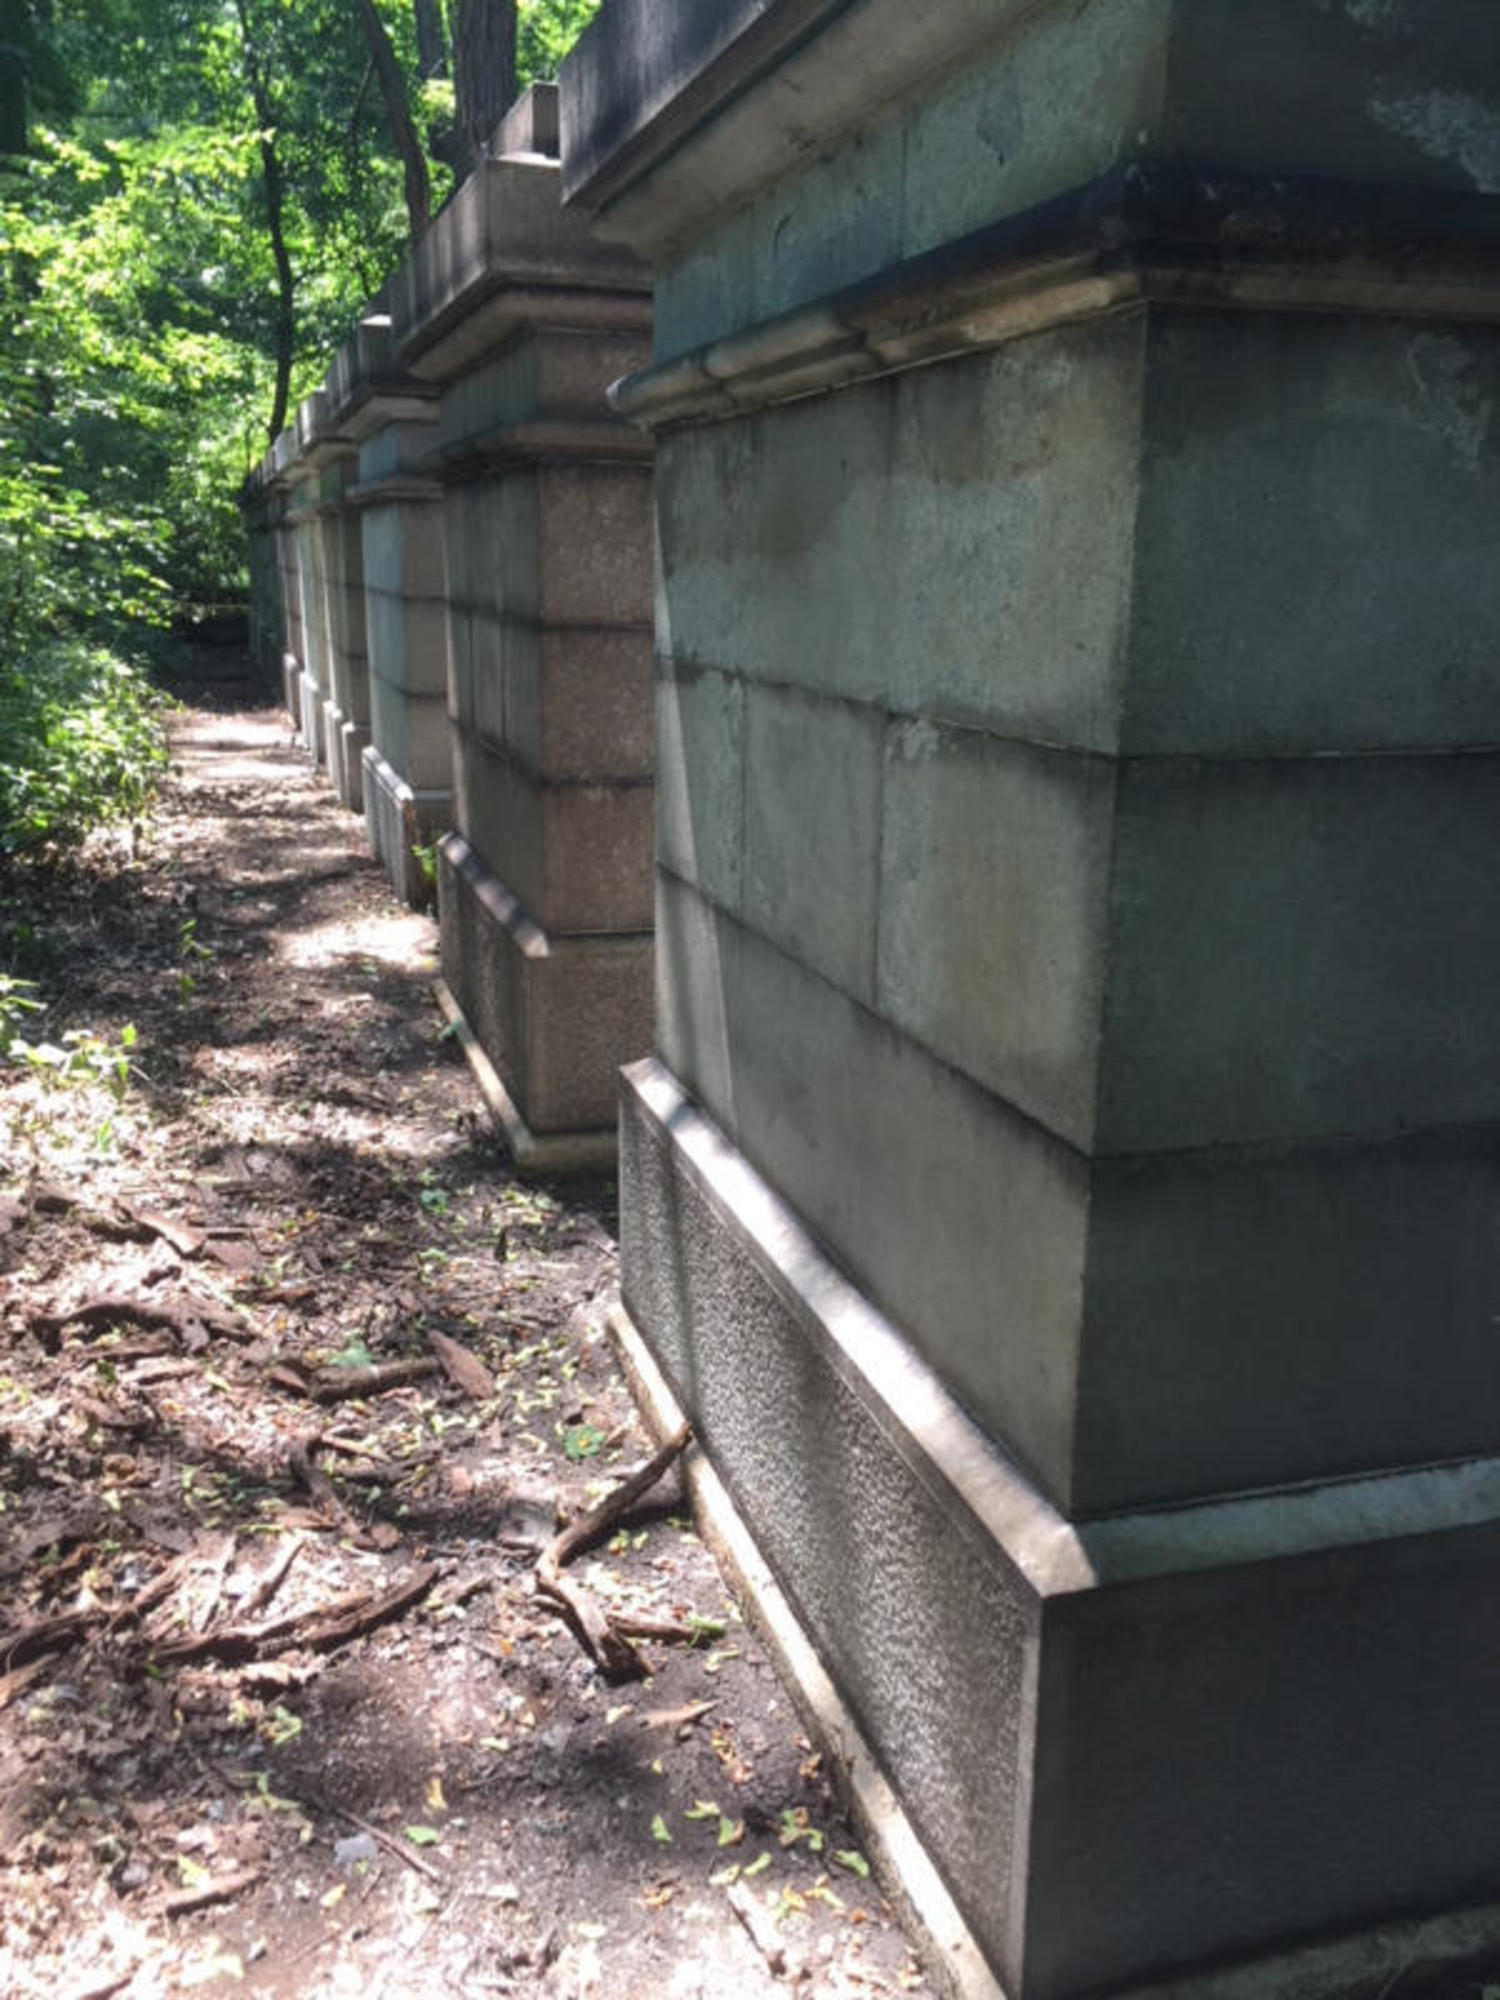 Test Stone Pillars for Grand Central Terminal Are Restored in Van Cortlandt Park